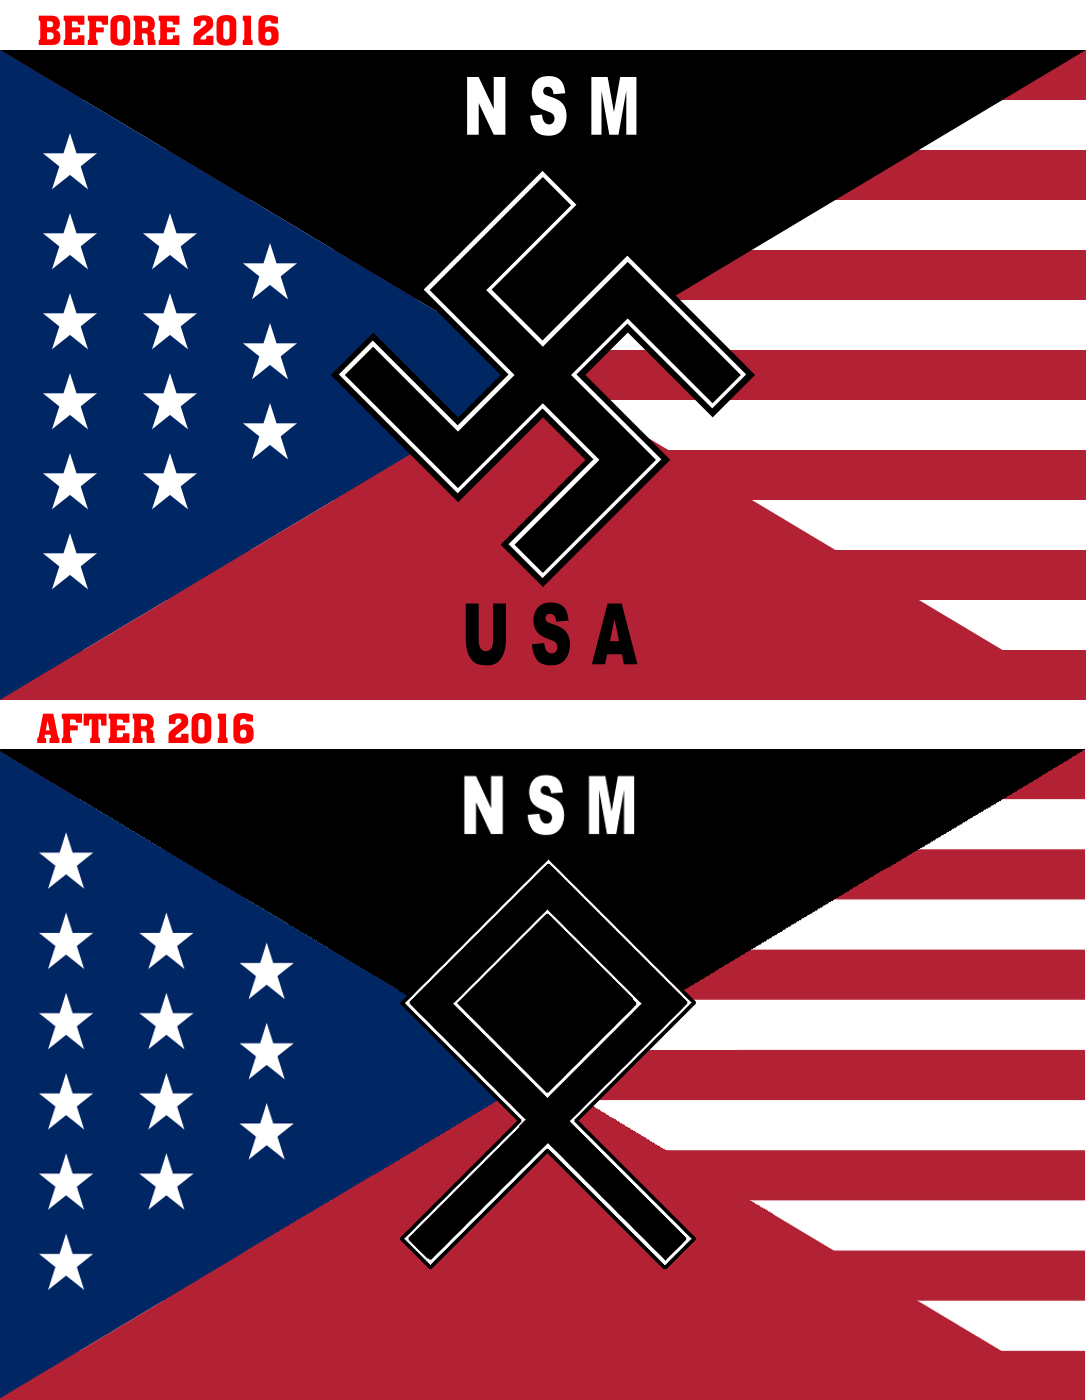 in 2016, the National Socialist Movement changed their logo from the swastika to the Odal rune in an attempt to broaden the appeal of their nazi politics